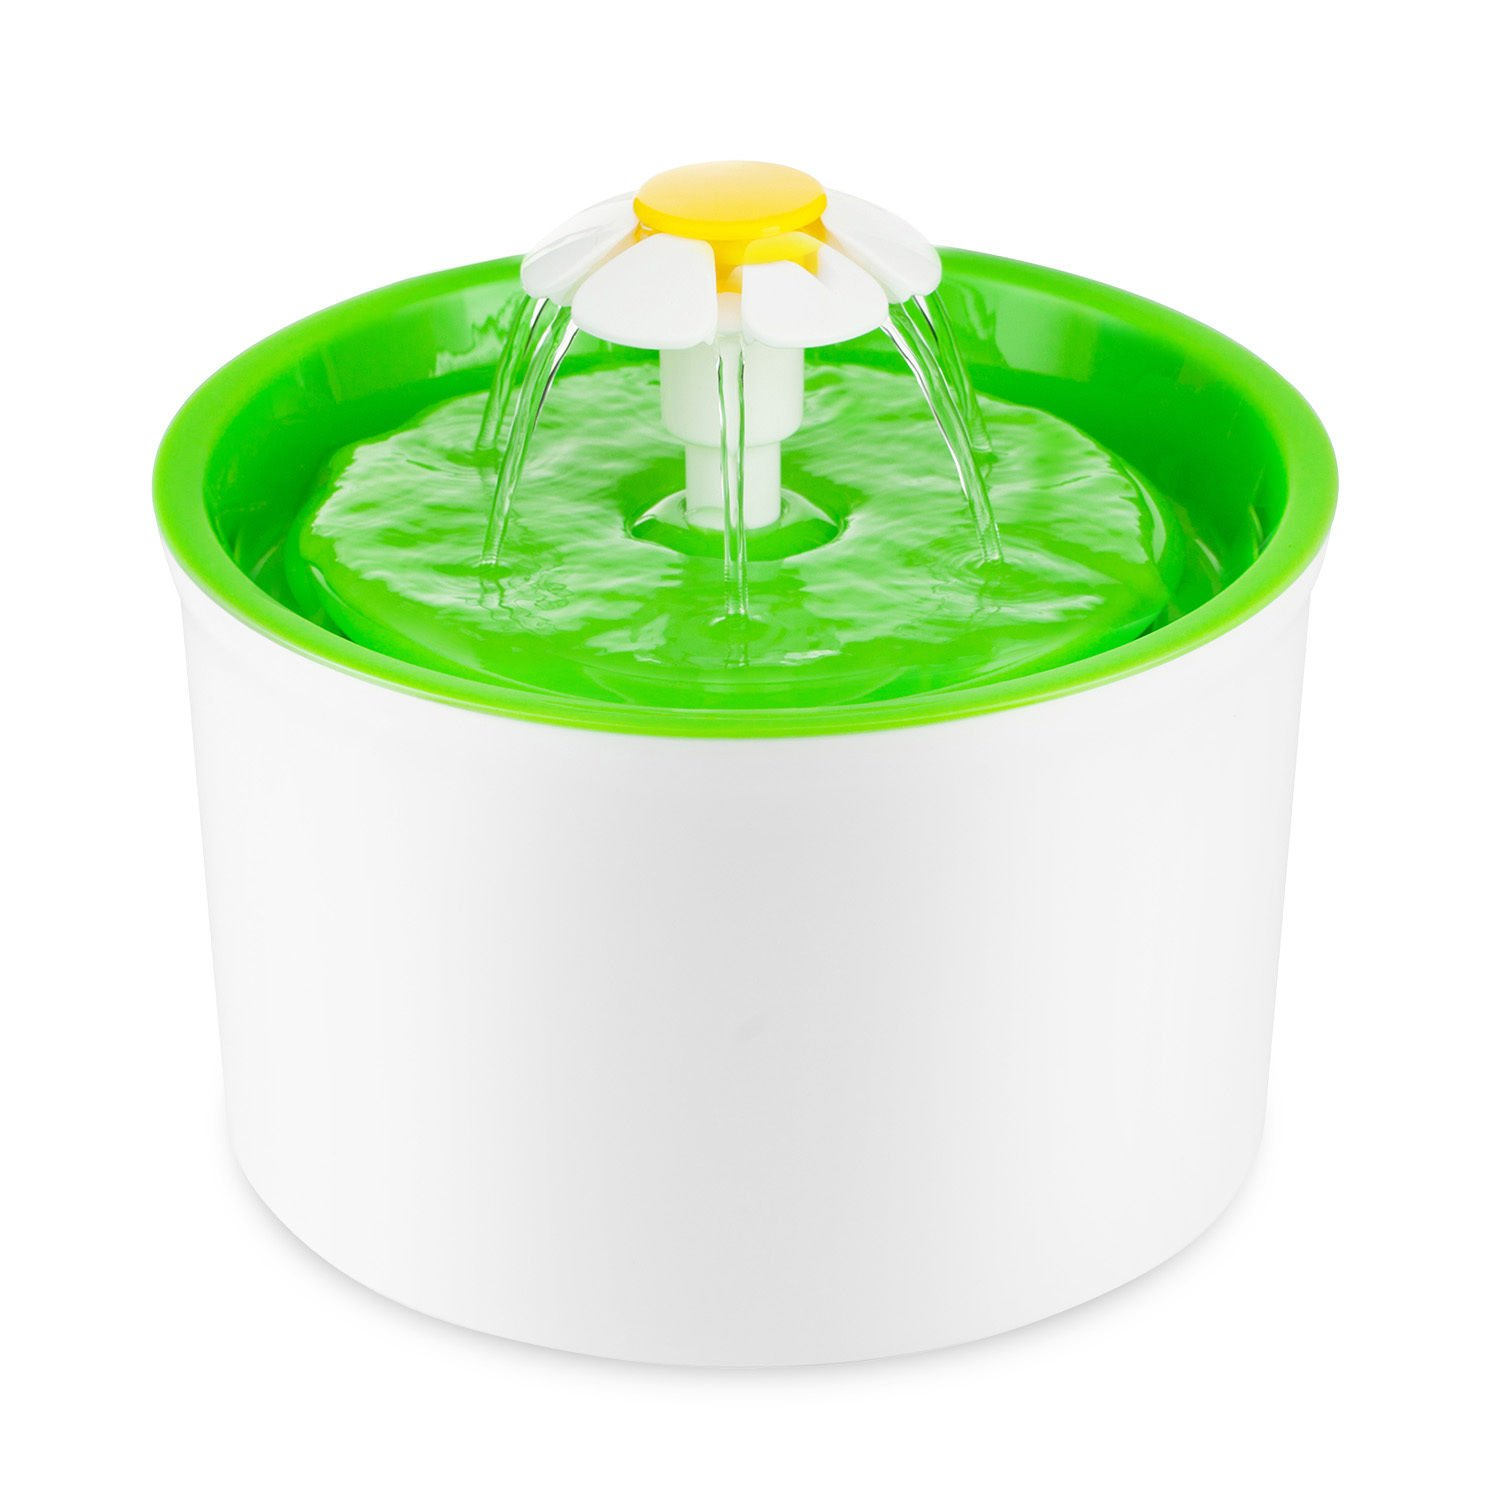 Green UKPlug,Pet Water Fountain Green UKPlug,Pet Water Fountain FidgetFidget 1.6L Flower Dog Cat Kitten Water Drinking Pet Fountain Bowl Drink Dish Filter Green UKPlug Pet Water Fountain